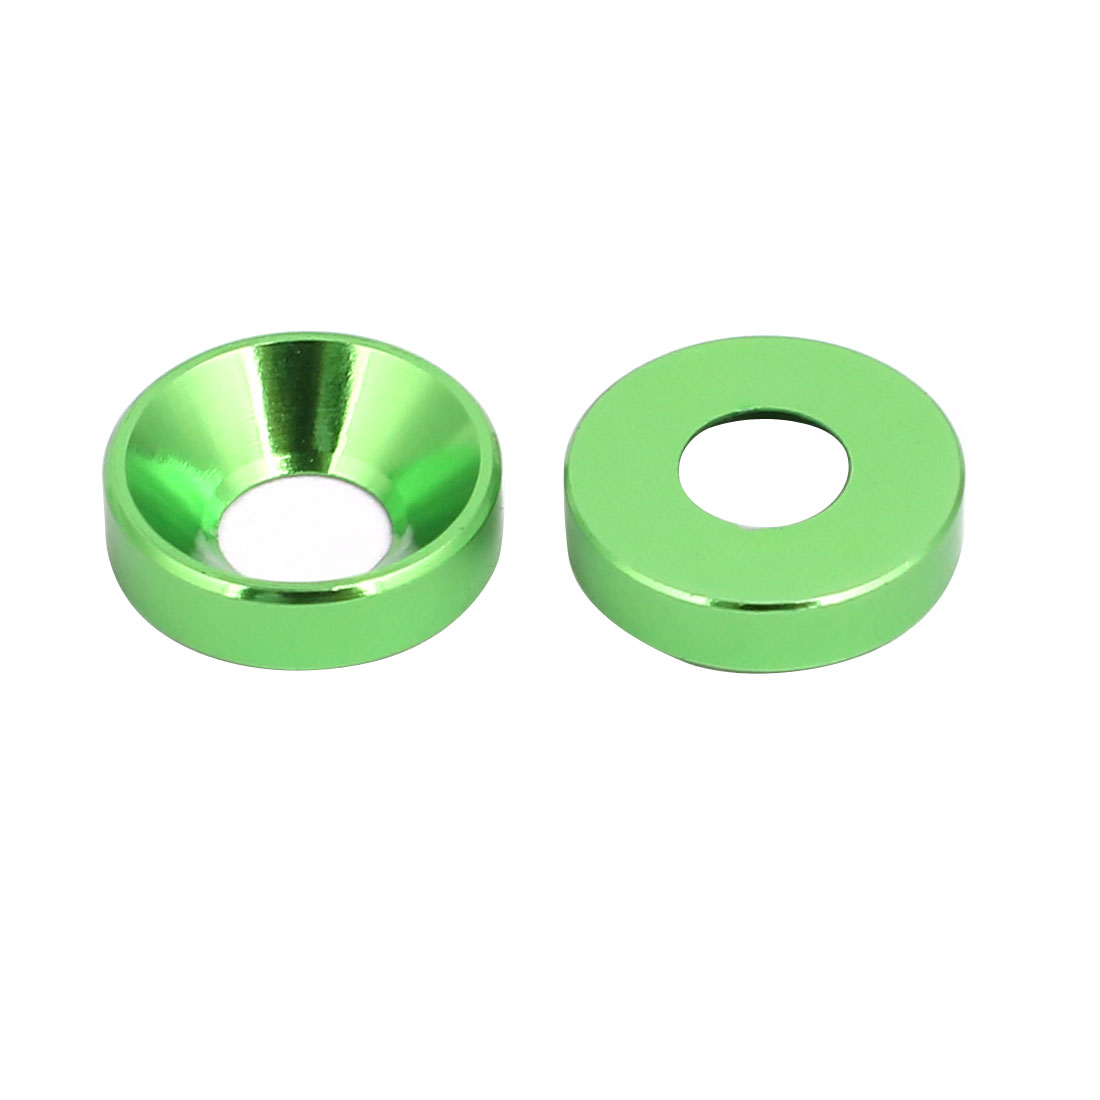 M4 Aluminium Alloy Cup Head Engine Bay Fender Bumper Washer Green 10pcs - image 1 of 2